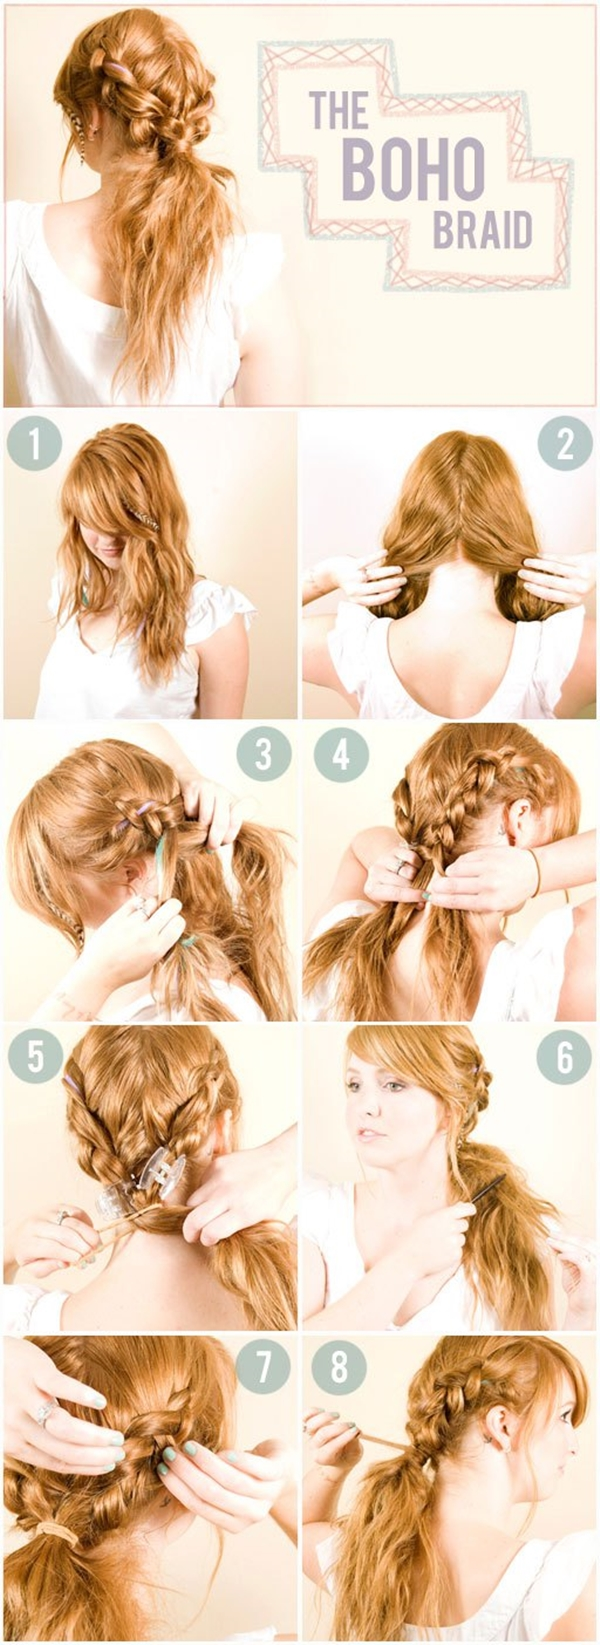 romantic hairstyle ideas (4)